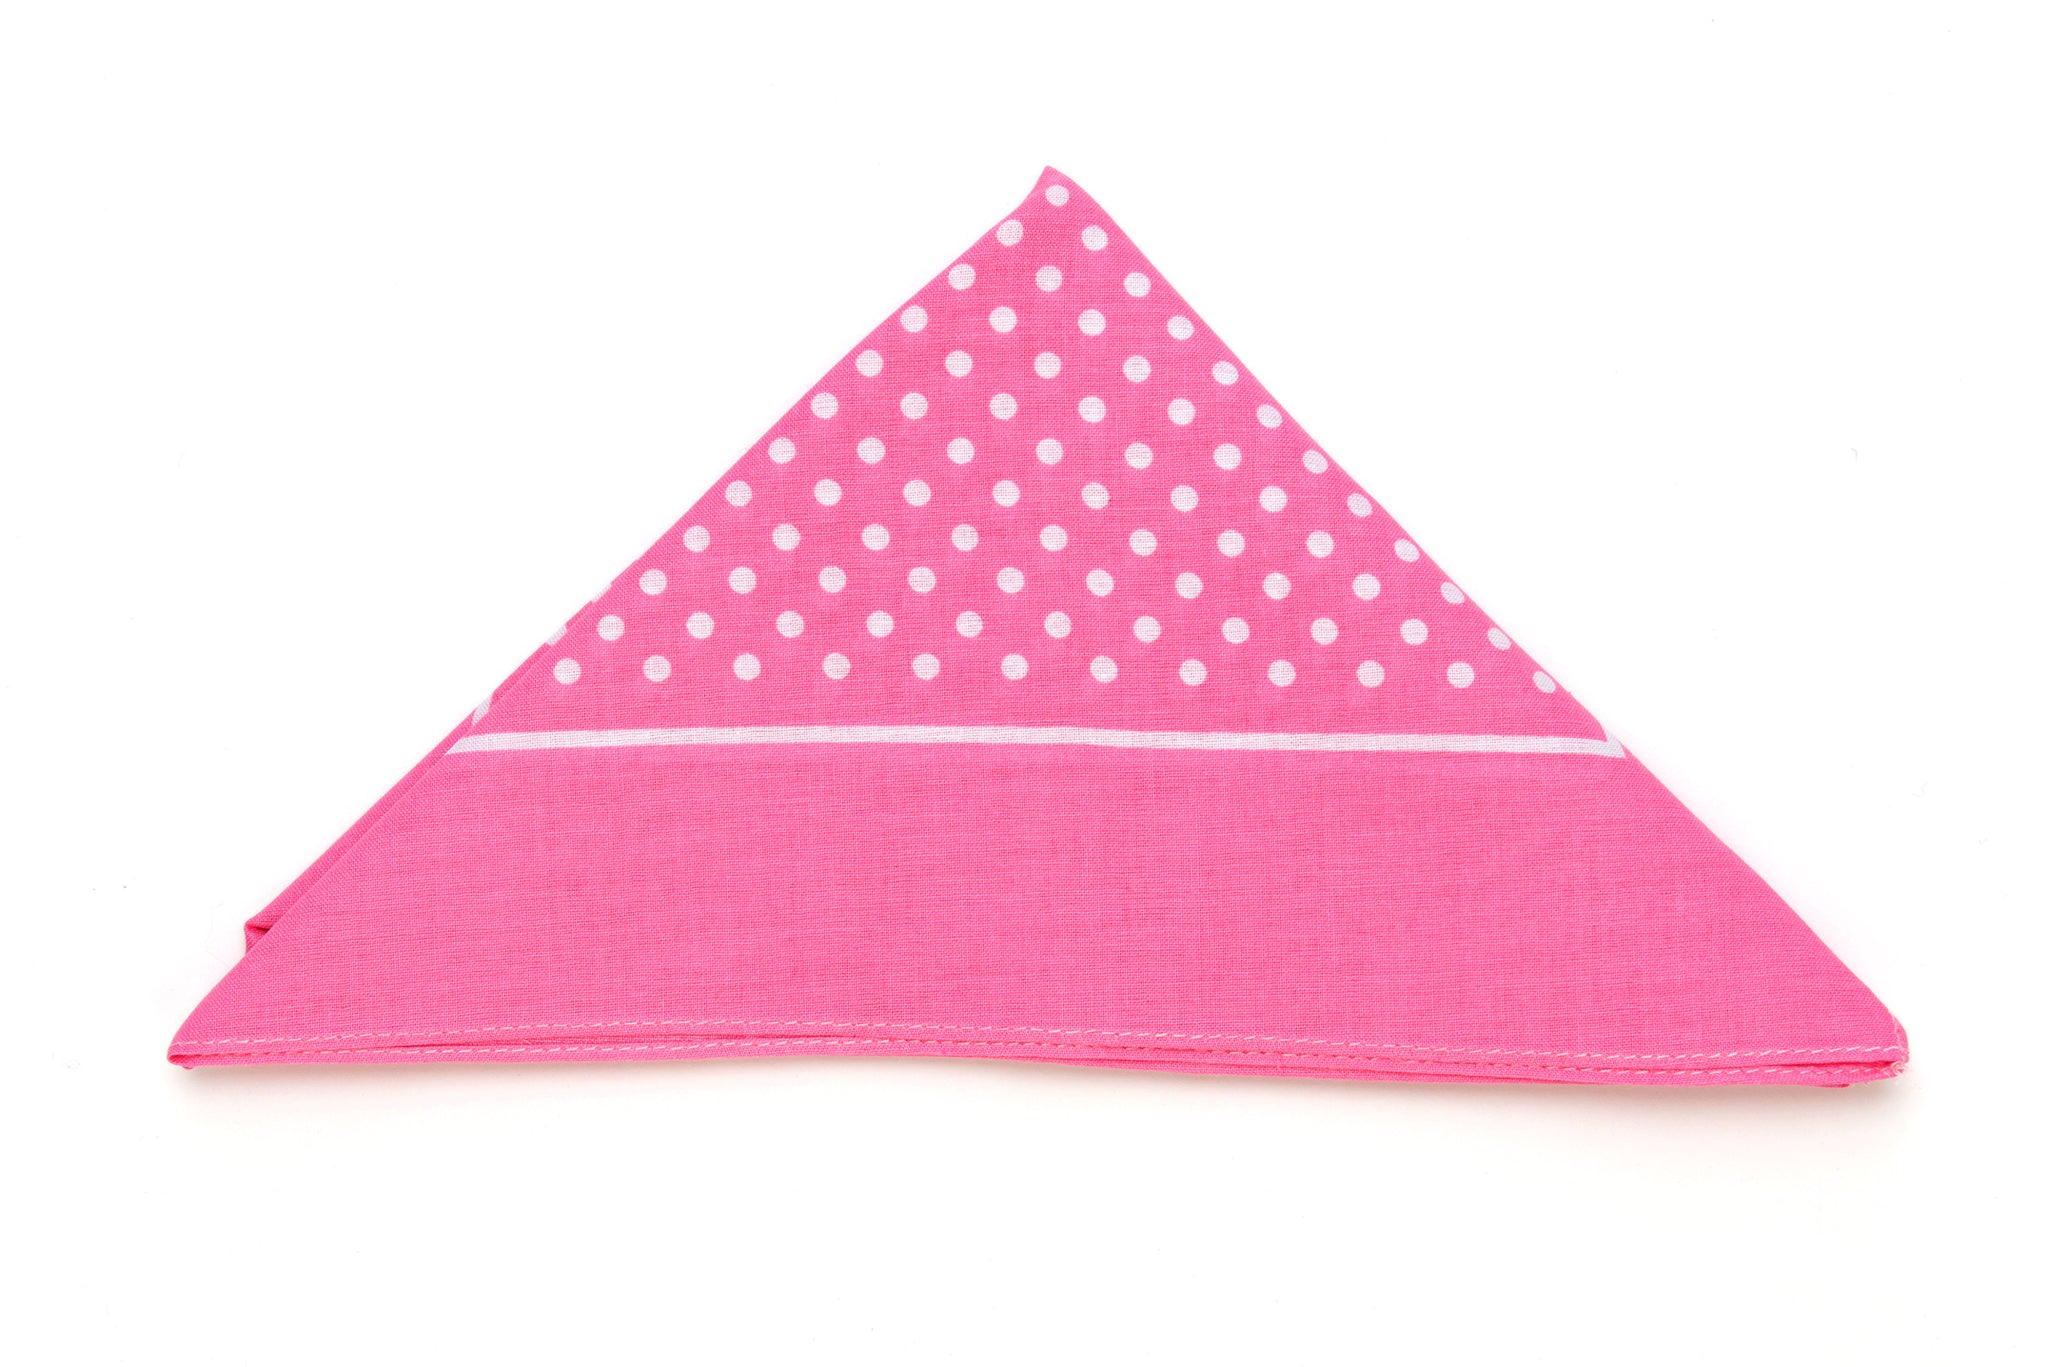 Regent - Cotton Hanky - Bandana - Bright Pink with White Spot